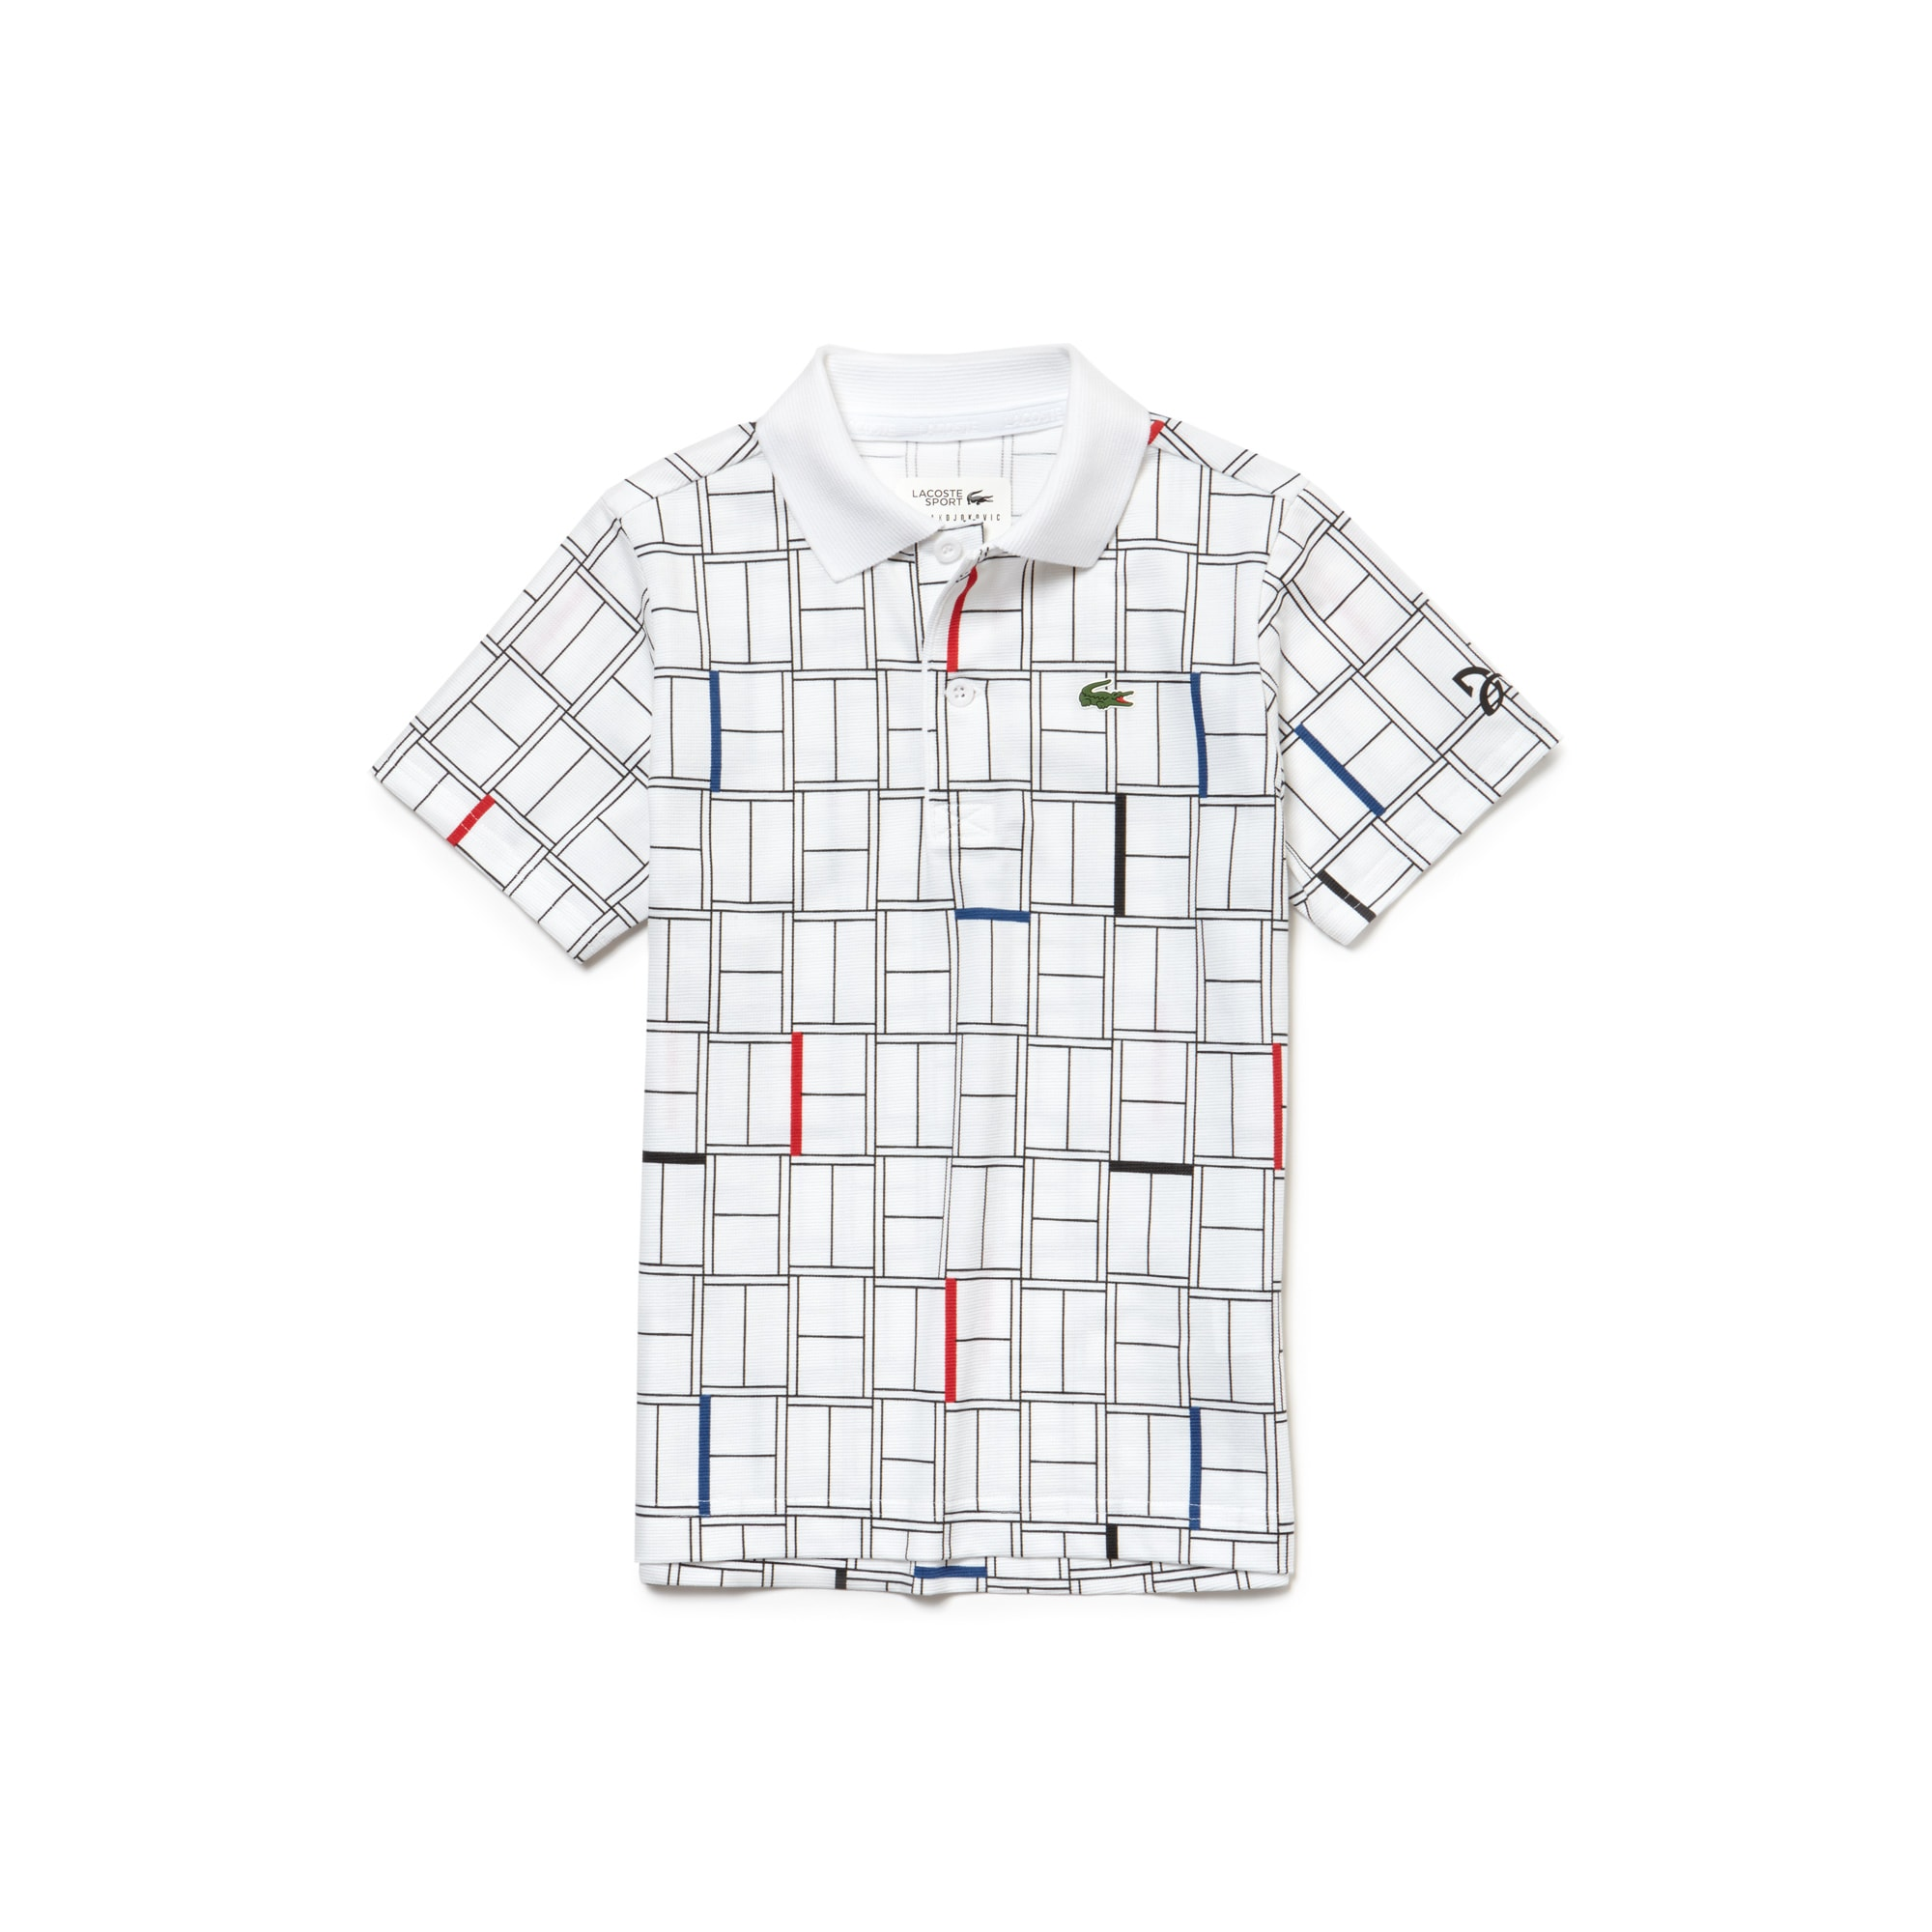 Polo Garçon LACOSTE SPORT COLLECTION NOVAK DJOKOVIC en coton léger imprimé